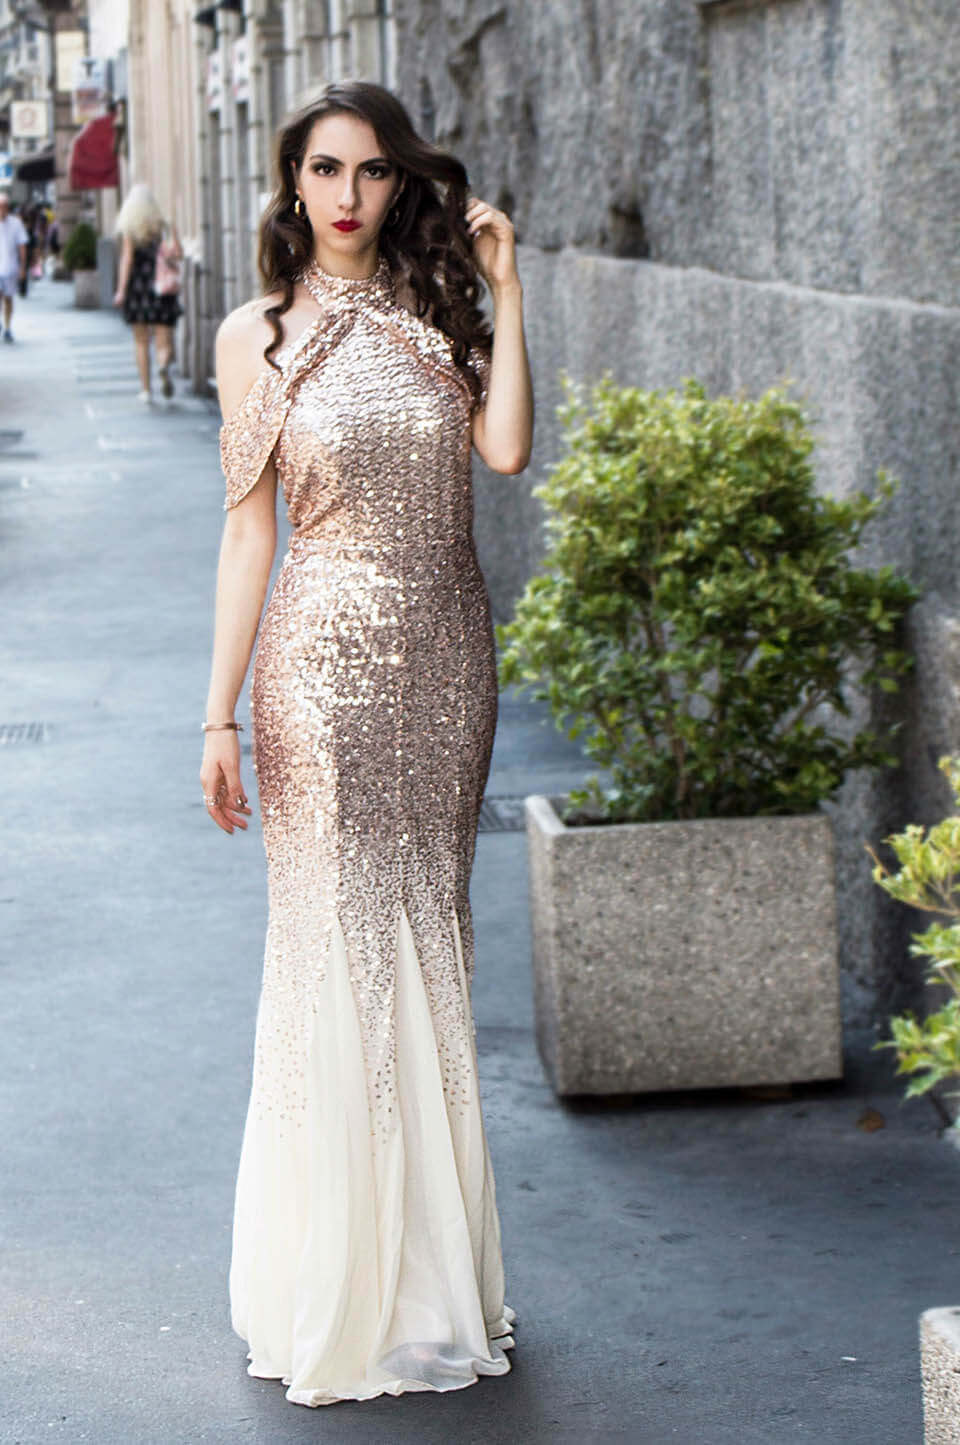 Bridesmaid dress in sequins